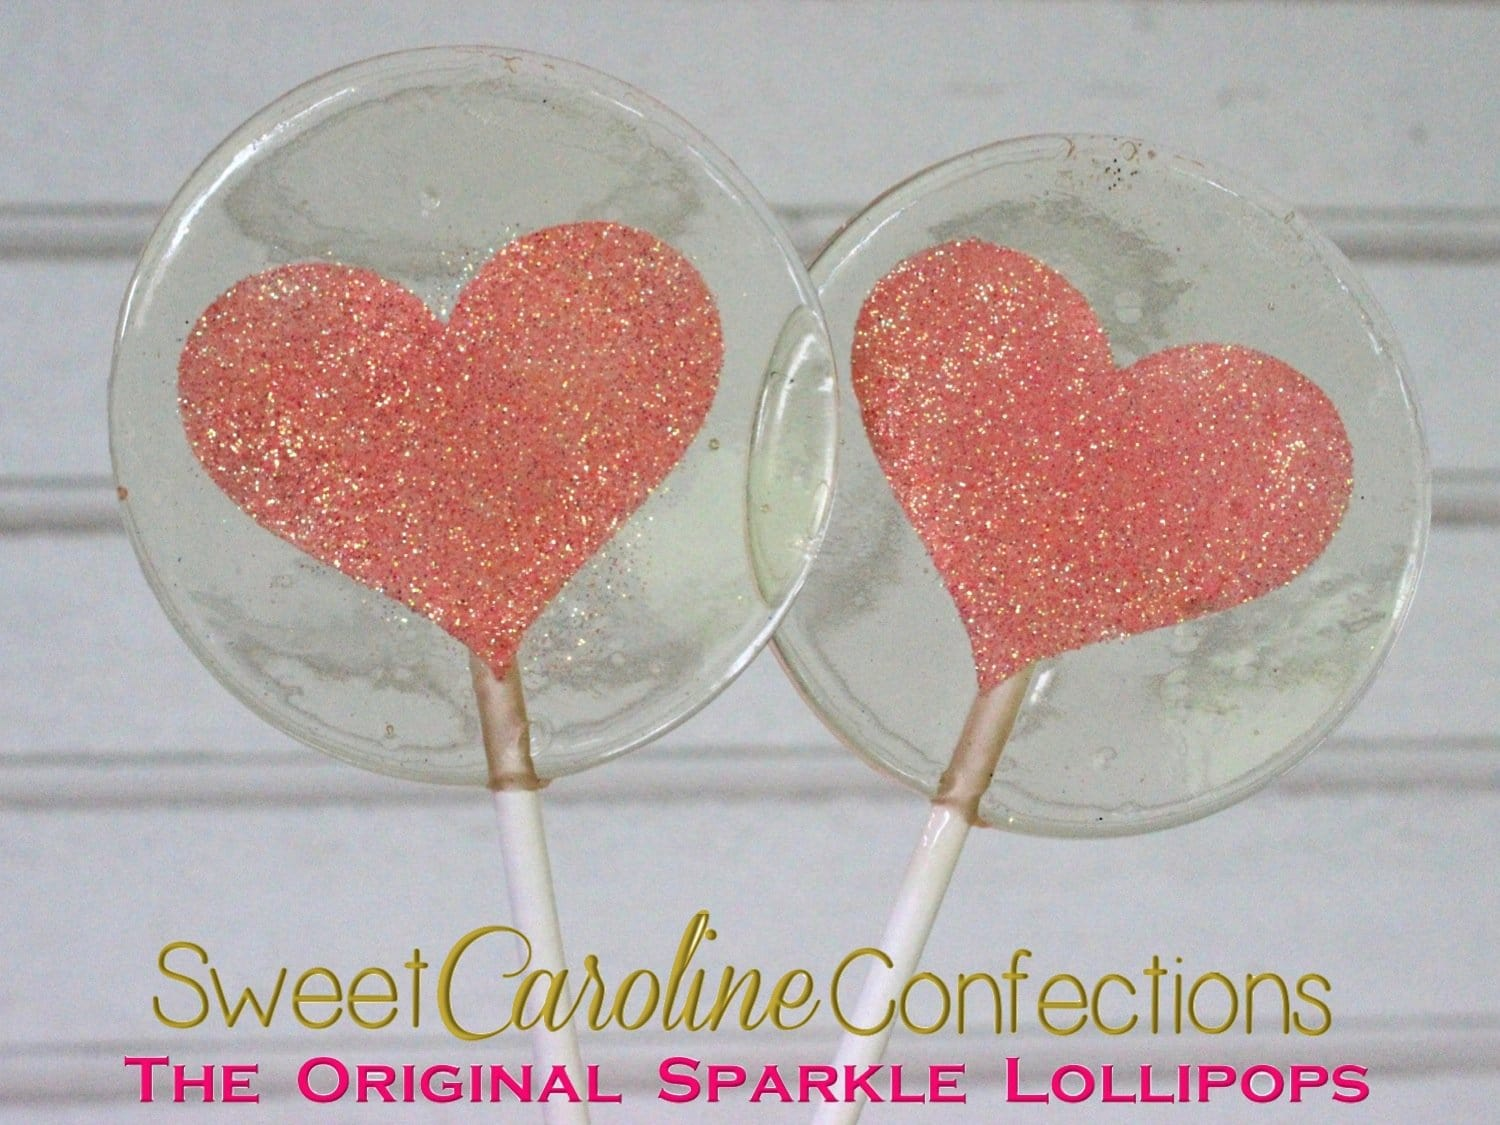 Light Peach Sparkle Heart Lollipop - Set of 6 - Sweet Caroline Confections | The Original Sparkle Lollipops